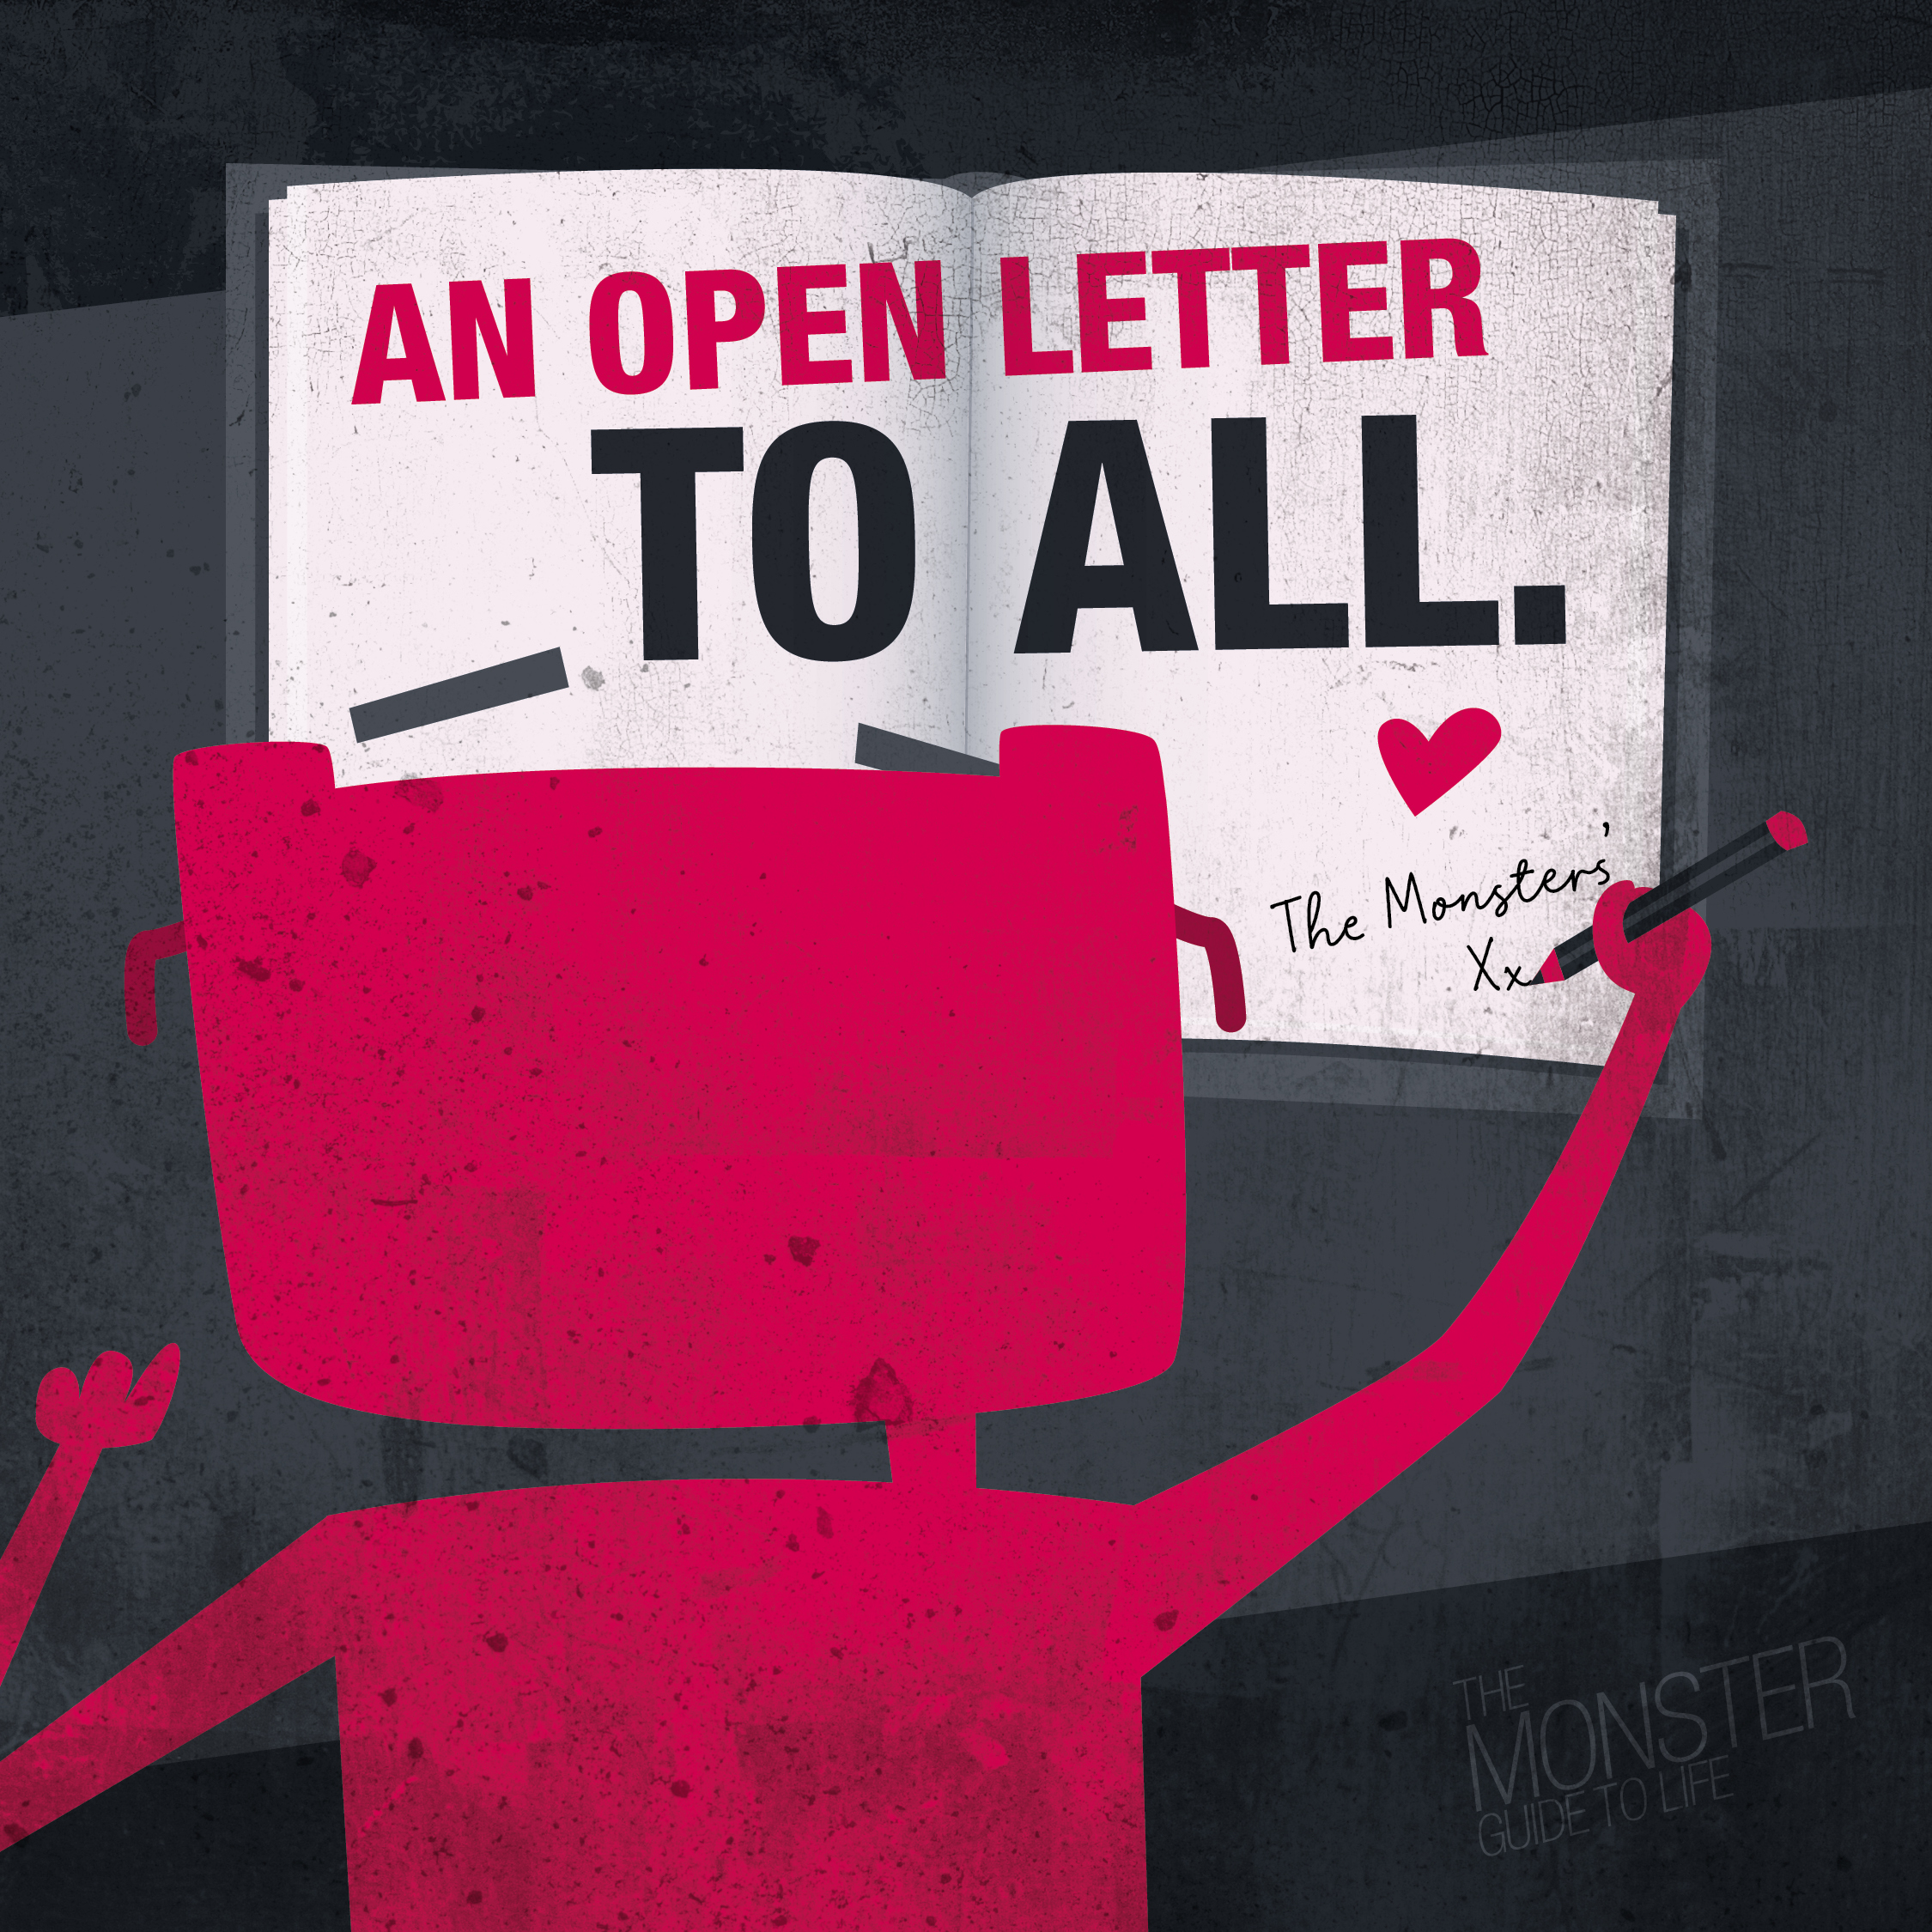 An open letter to all